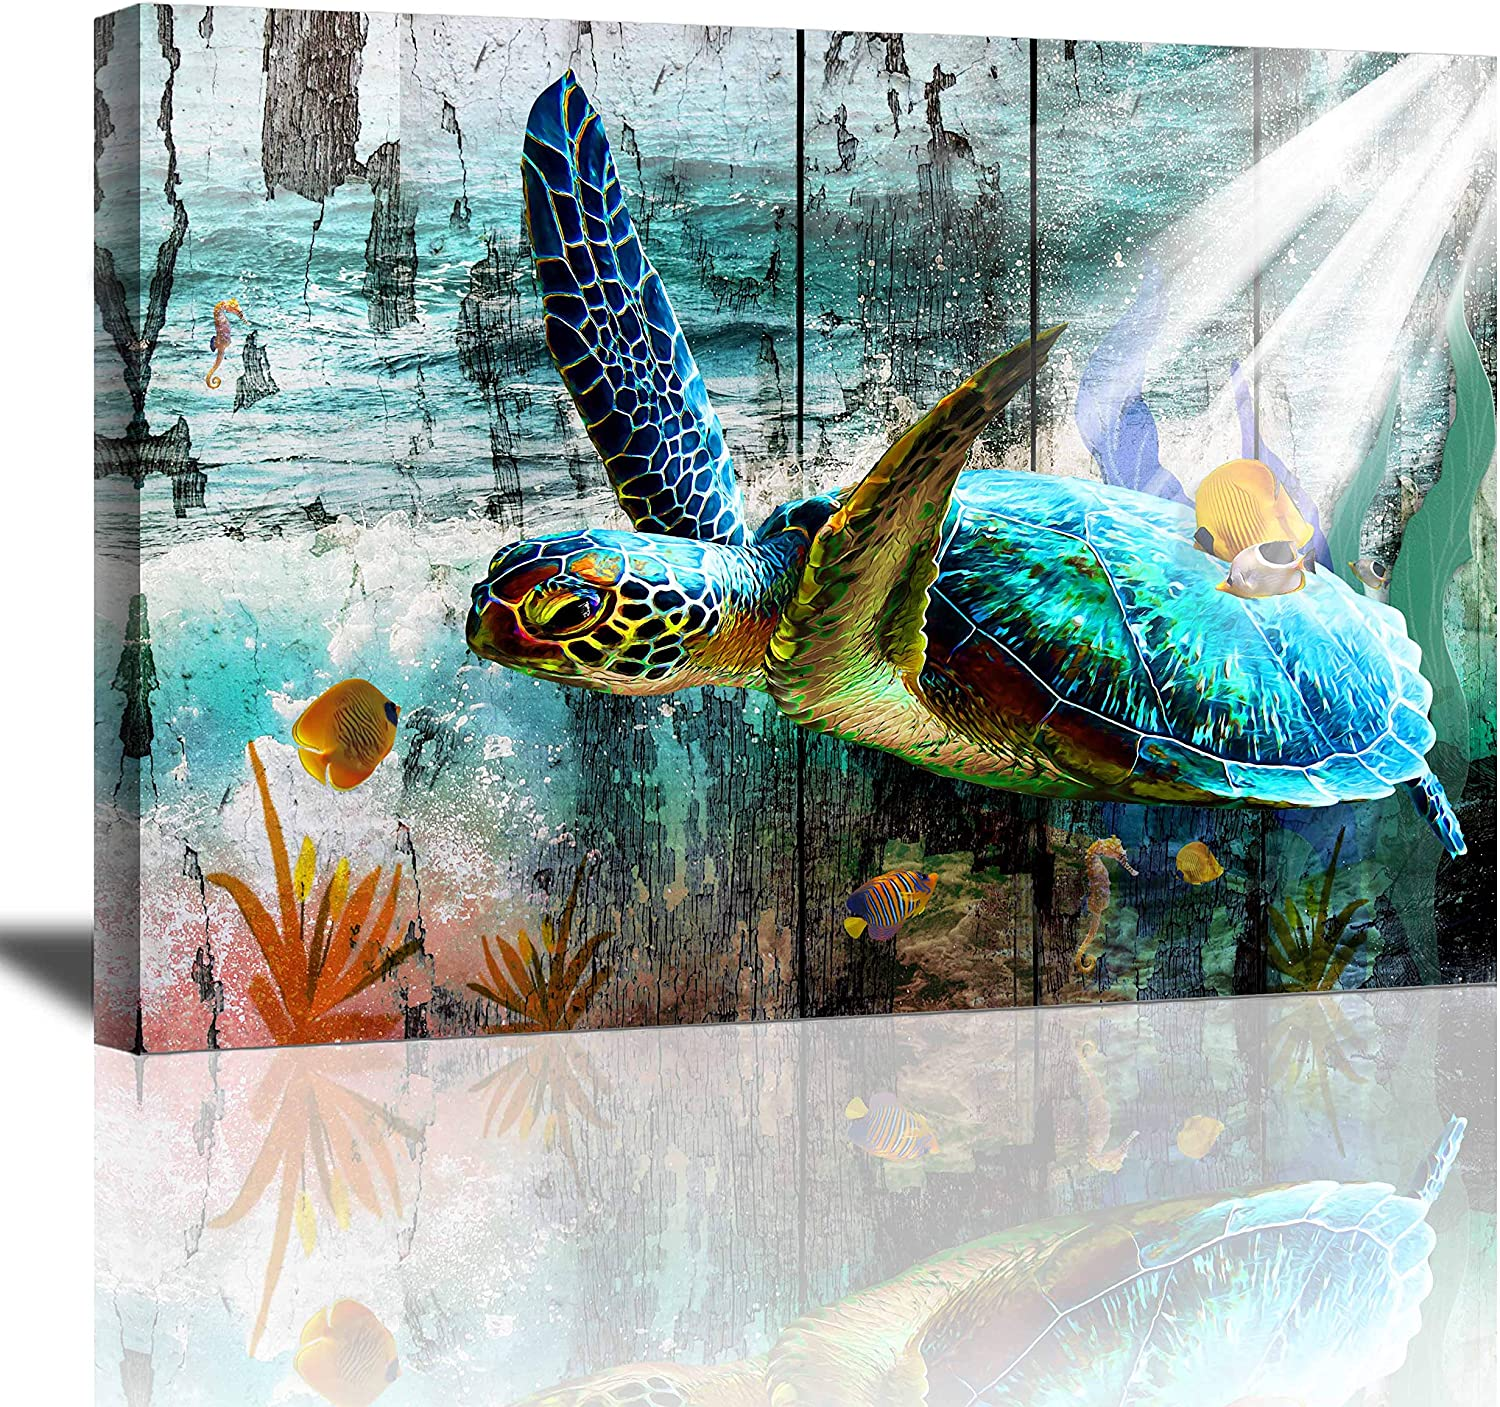 Bathroom Decor Wall Art Canvas Wall Art Sea Turtle Decor Blue Ocean Pictures Wall Art Canvas Framed Art Prints for Bedroom Living Room Wall Decoration Ready to Hang